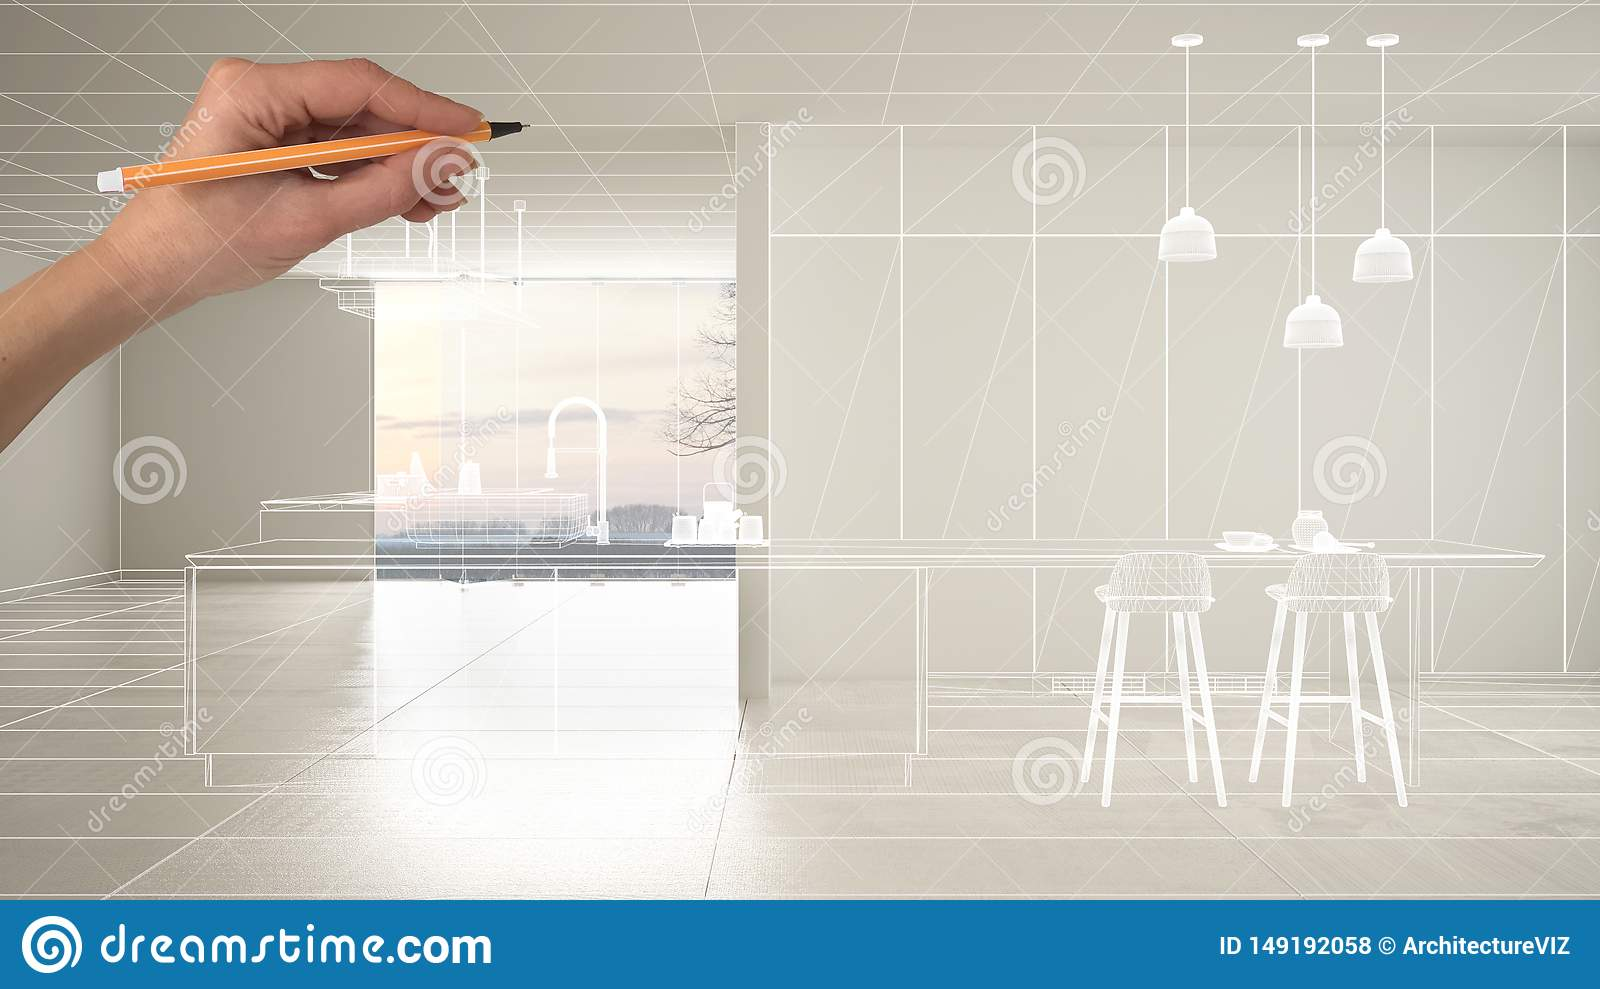 Empty white interior with white ceramic marble tiles floor, hand drawing custom architecture design, white ink sketch, blueprint